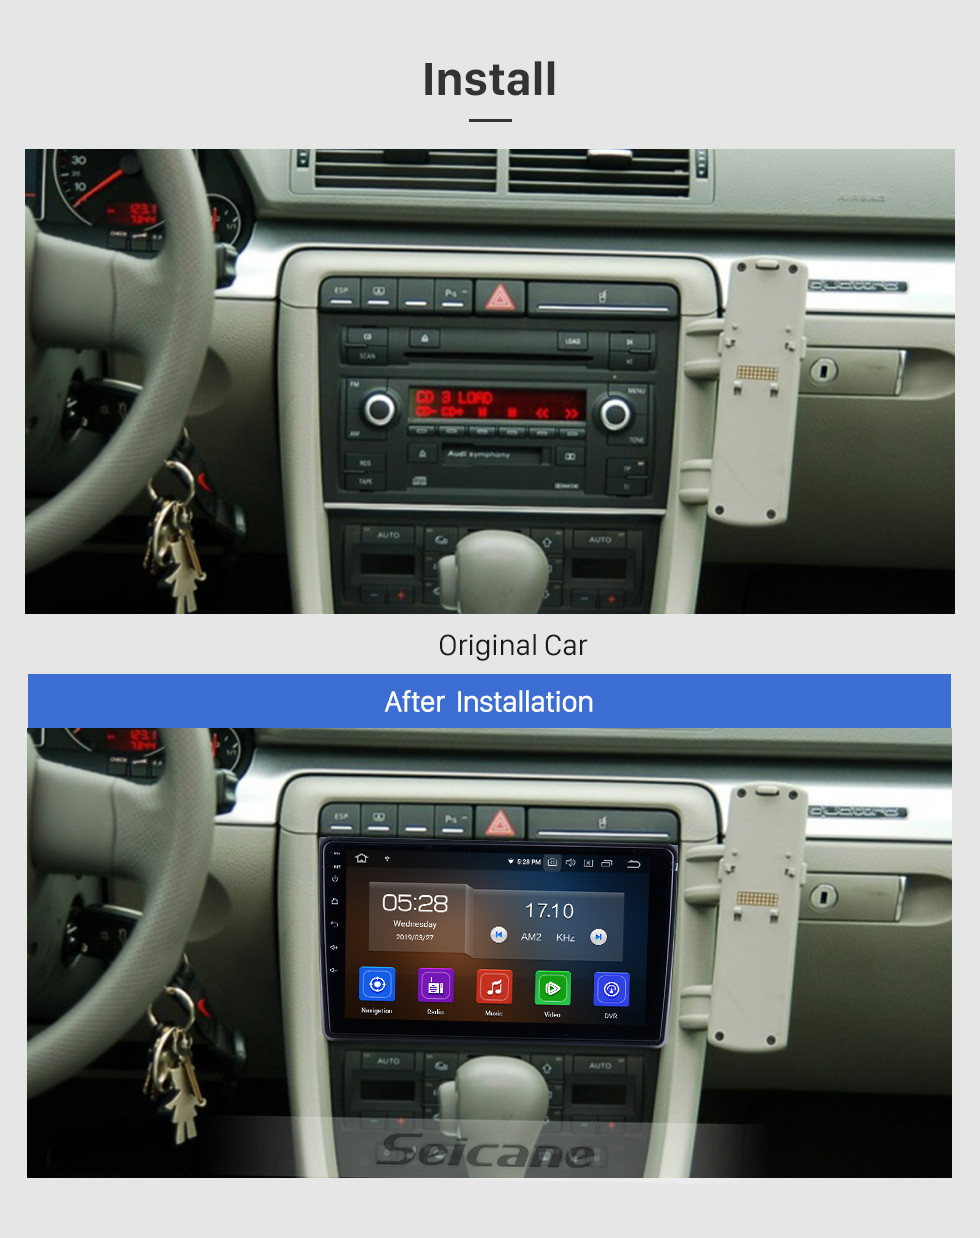 Seicane HD Touchscreen for 2002 2003 2004-2008 Audi A4 Radio Android 9.0 9 inch GPS Navigation Bluetooth WIFI Carplay support DVR DAB+